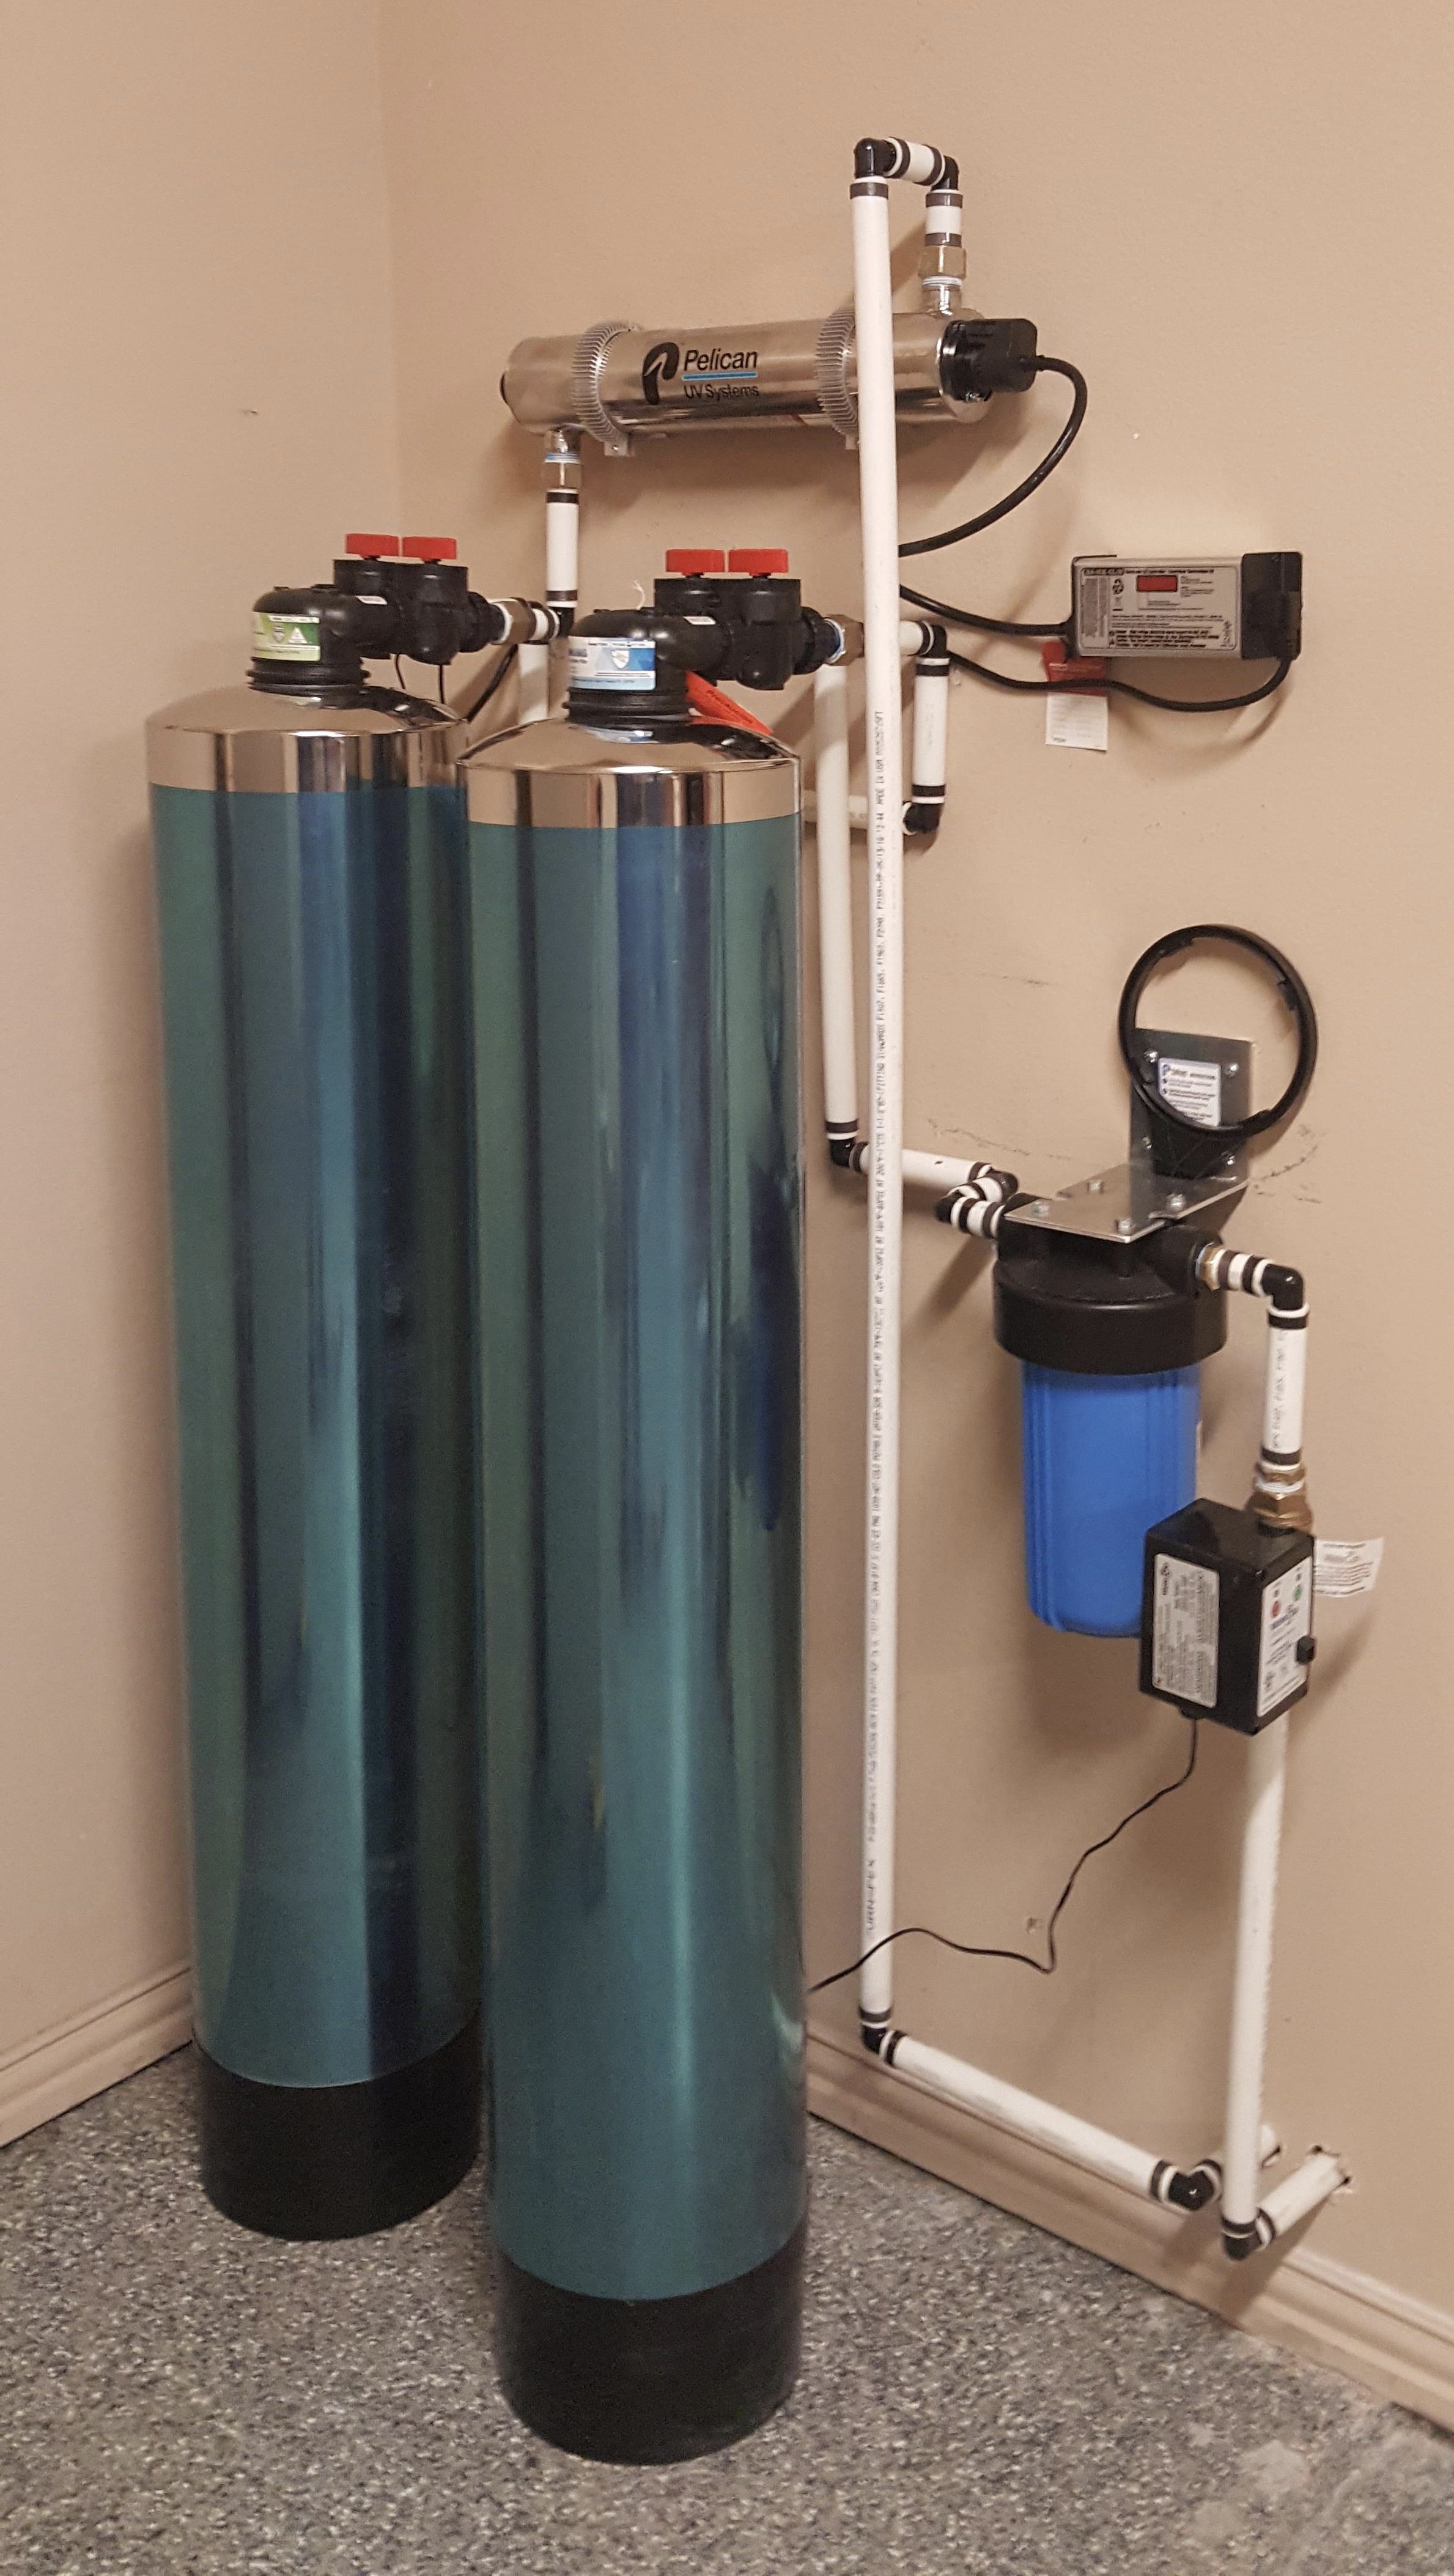 WHOLE HOME FILTER W/ ANTI SCALE & ULTRA VIOLET FILTRATION